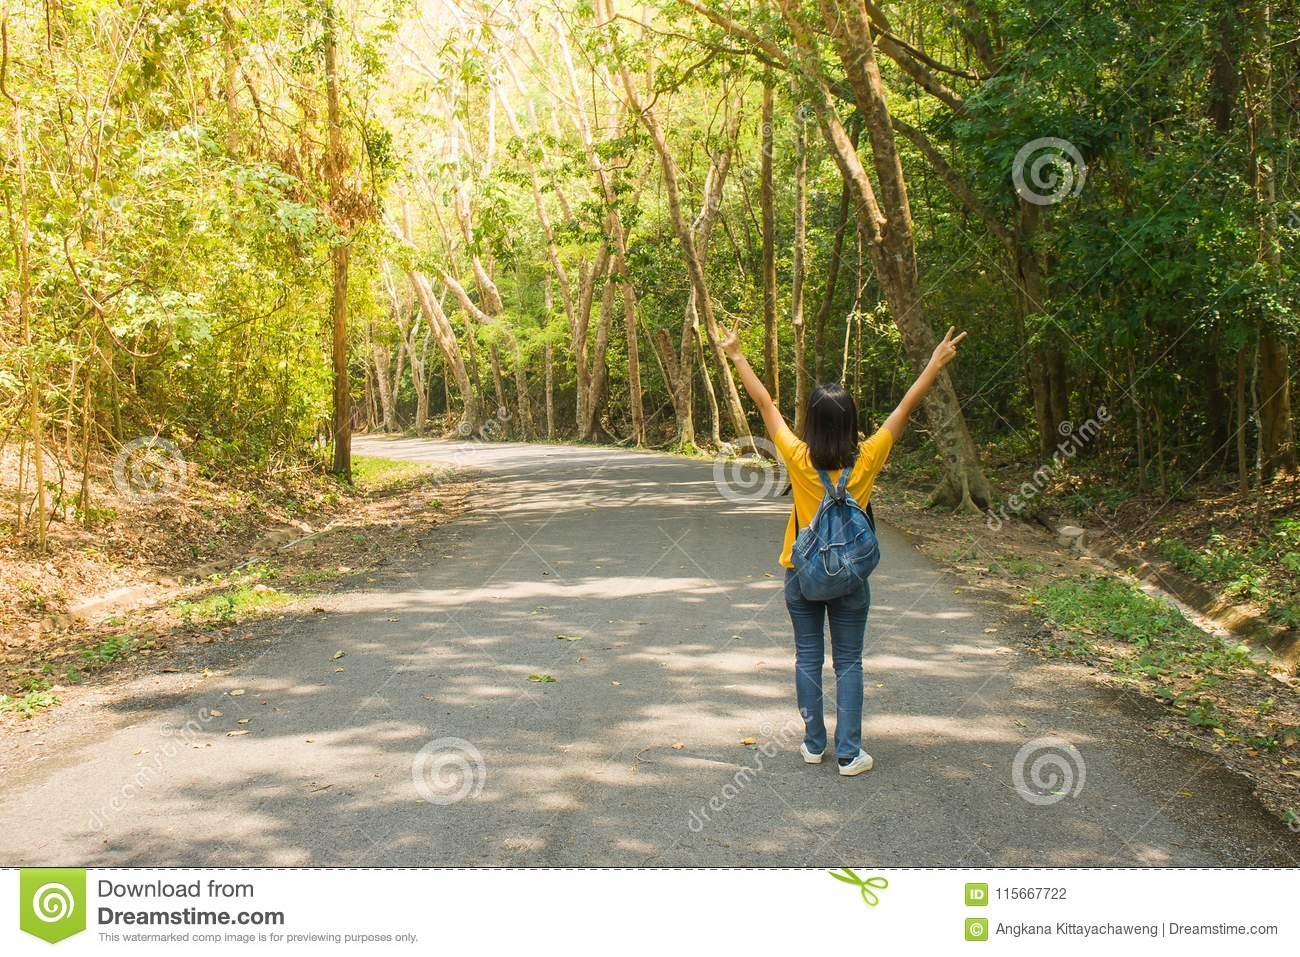 Alone woman traveller or backpacker walking along contryside road among green trees, she has feeling happiness.